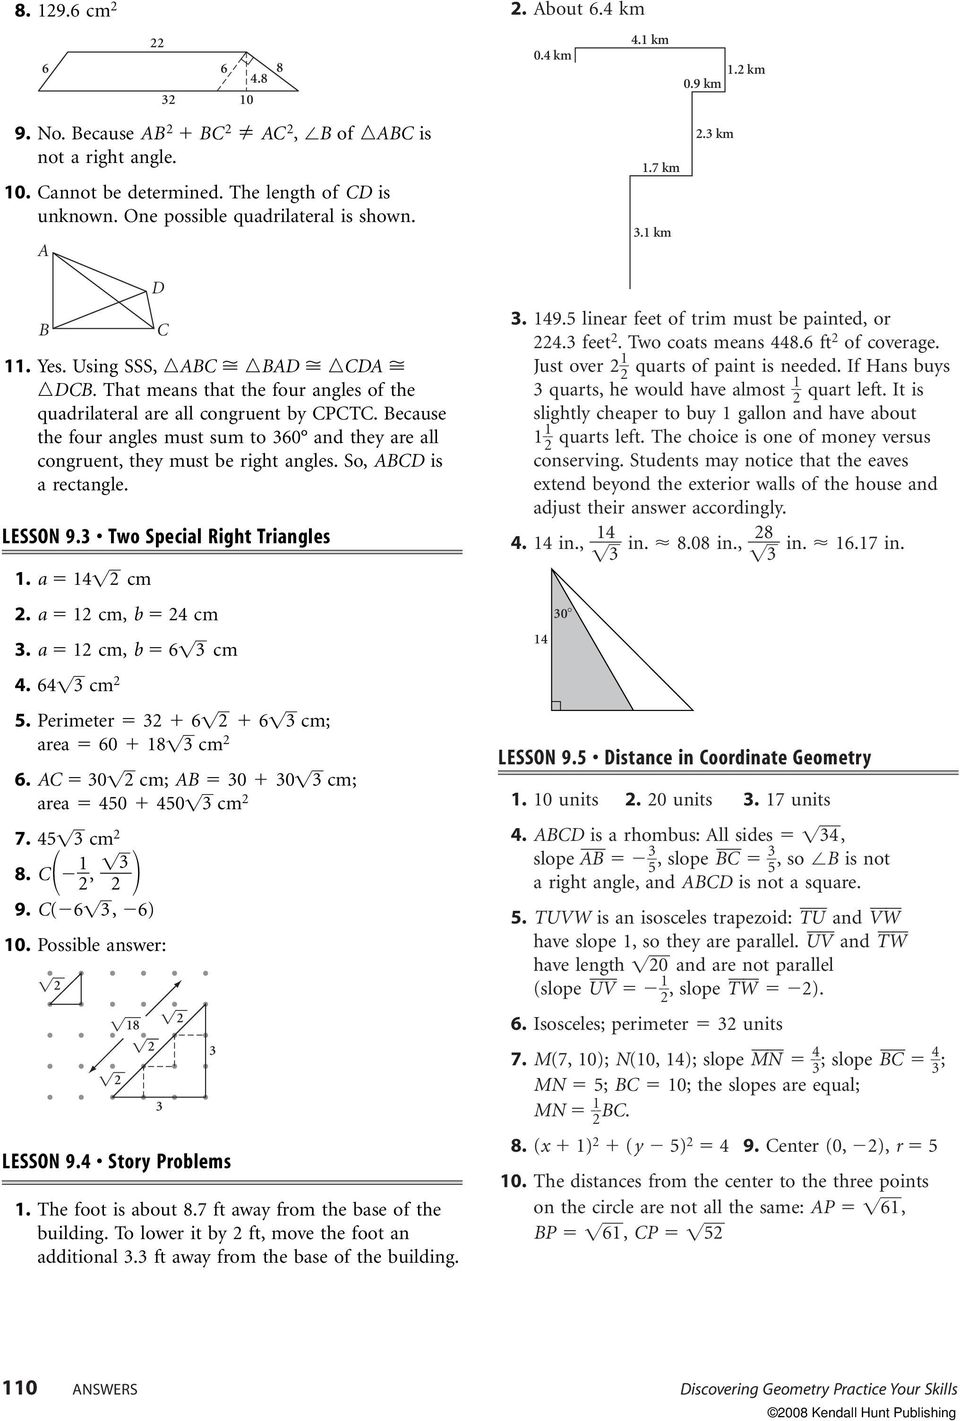 LESSON 9. Two Special Right Triangles 1. a 14 cm. a 1 cm, b 4 cm. a 1 cm, b 6 cm 4. 64 cm 5. Perimeter 6 6 cm; area 60 18 cm 6. 0 cm; 0 0 cm; area 450 450 cm 7. 45 cm 8. 1, 9. ( 6, 6) 10.